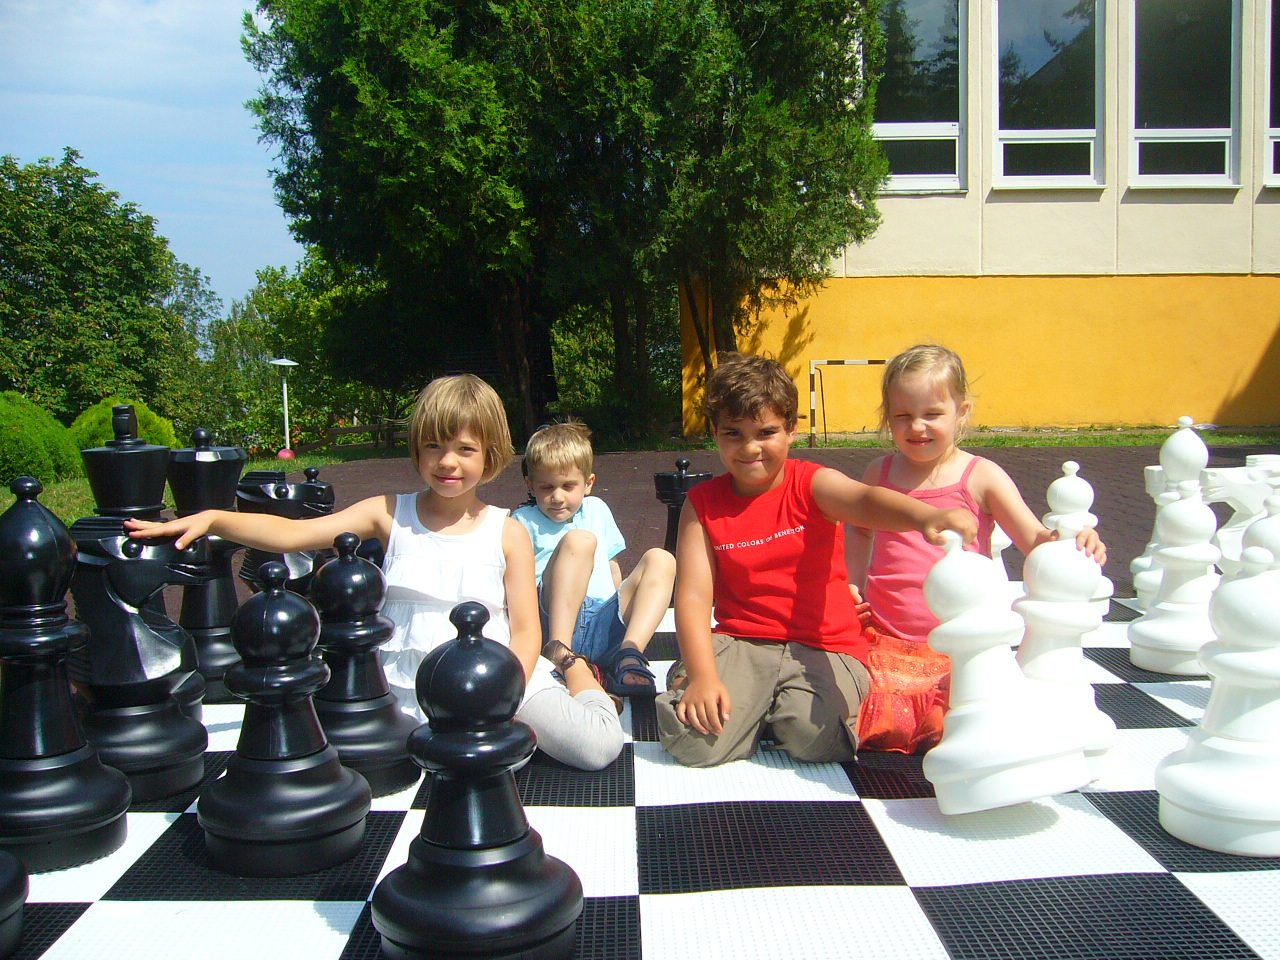 14-happy-kids-chess-pictures-2010-004